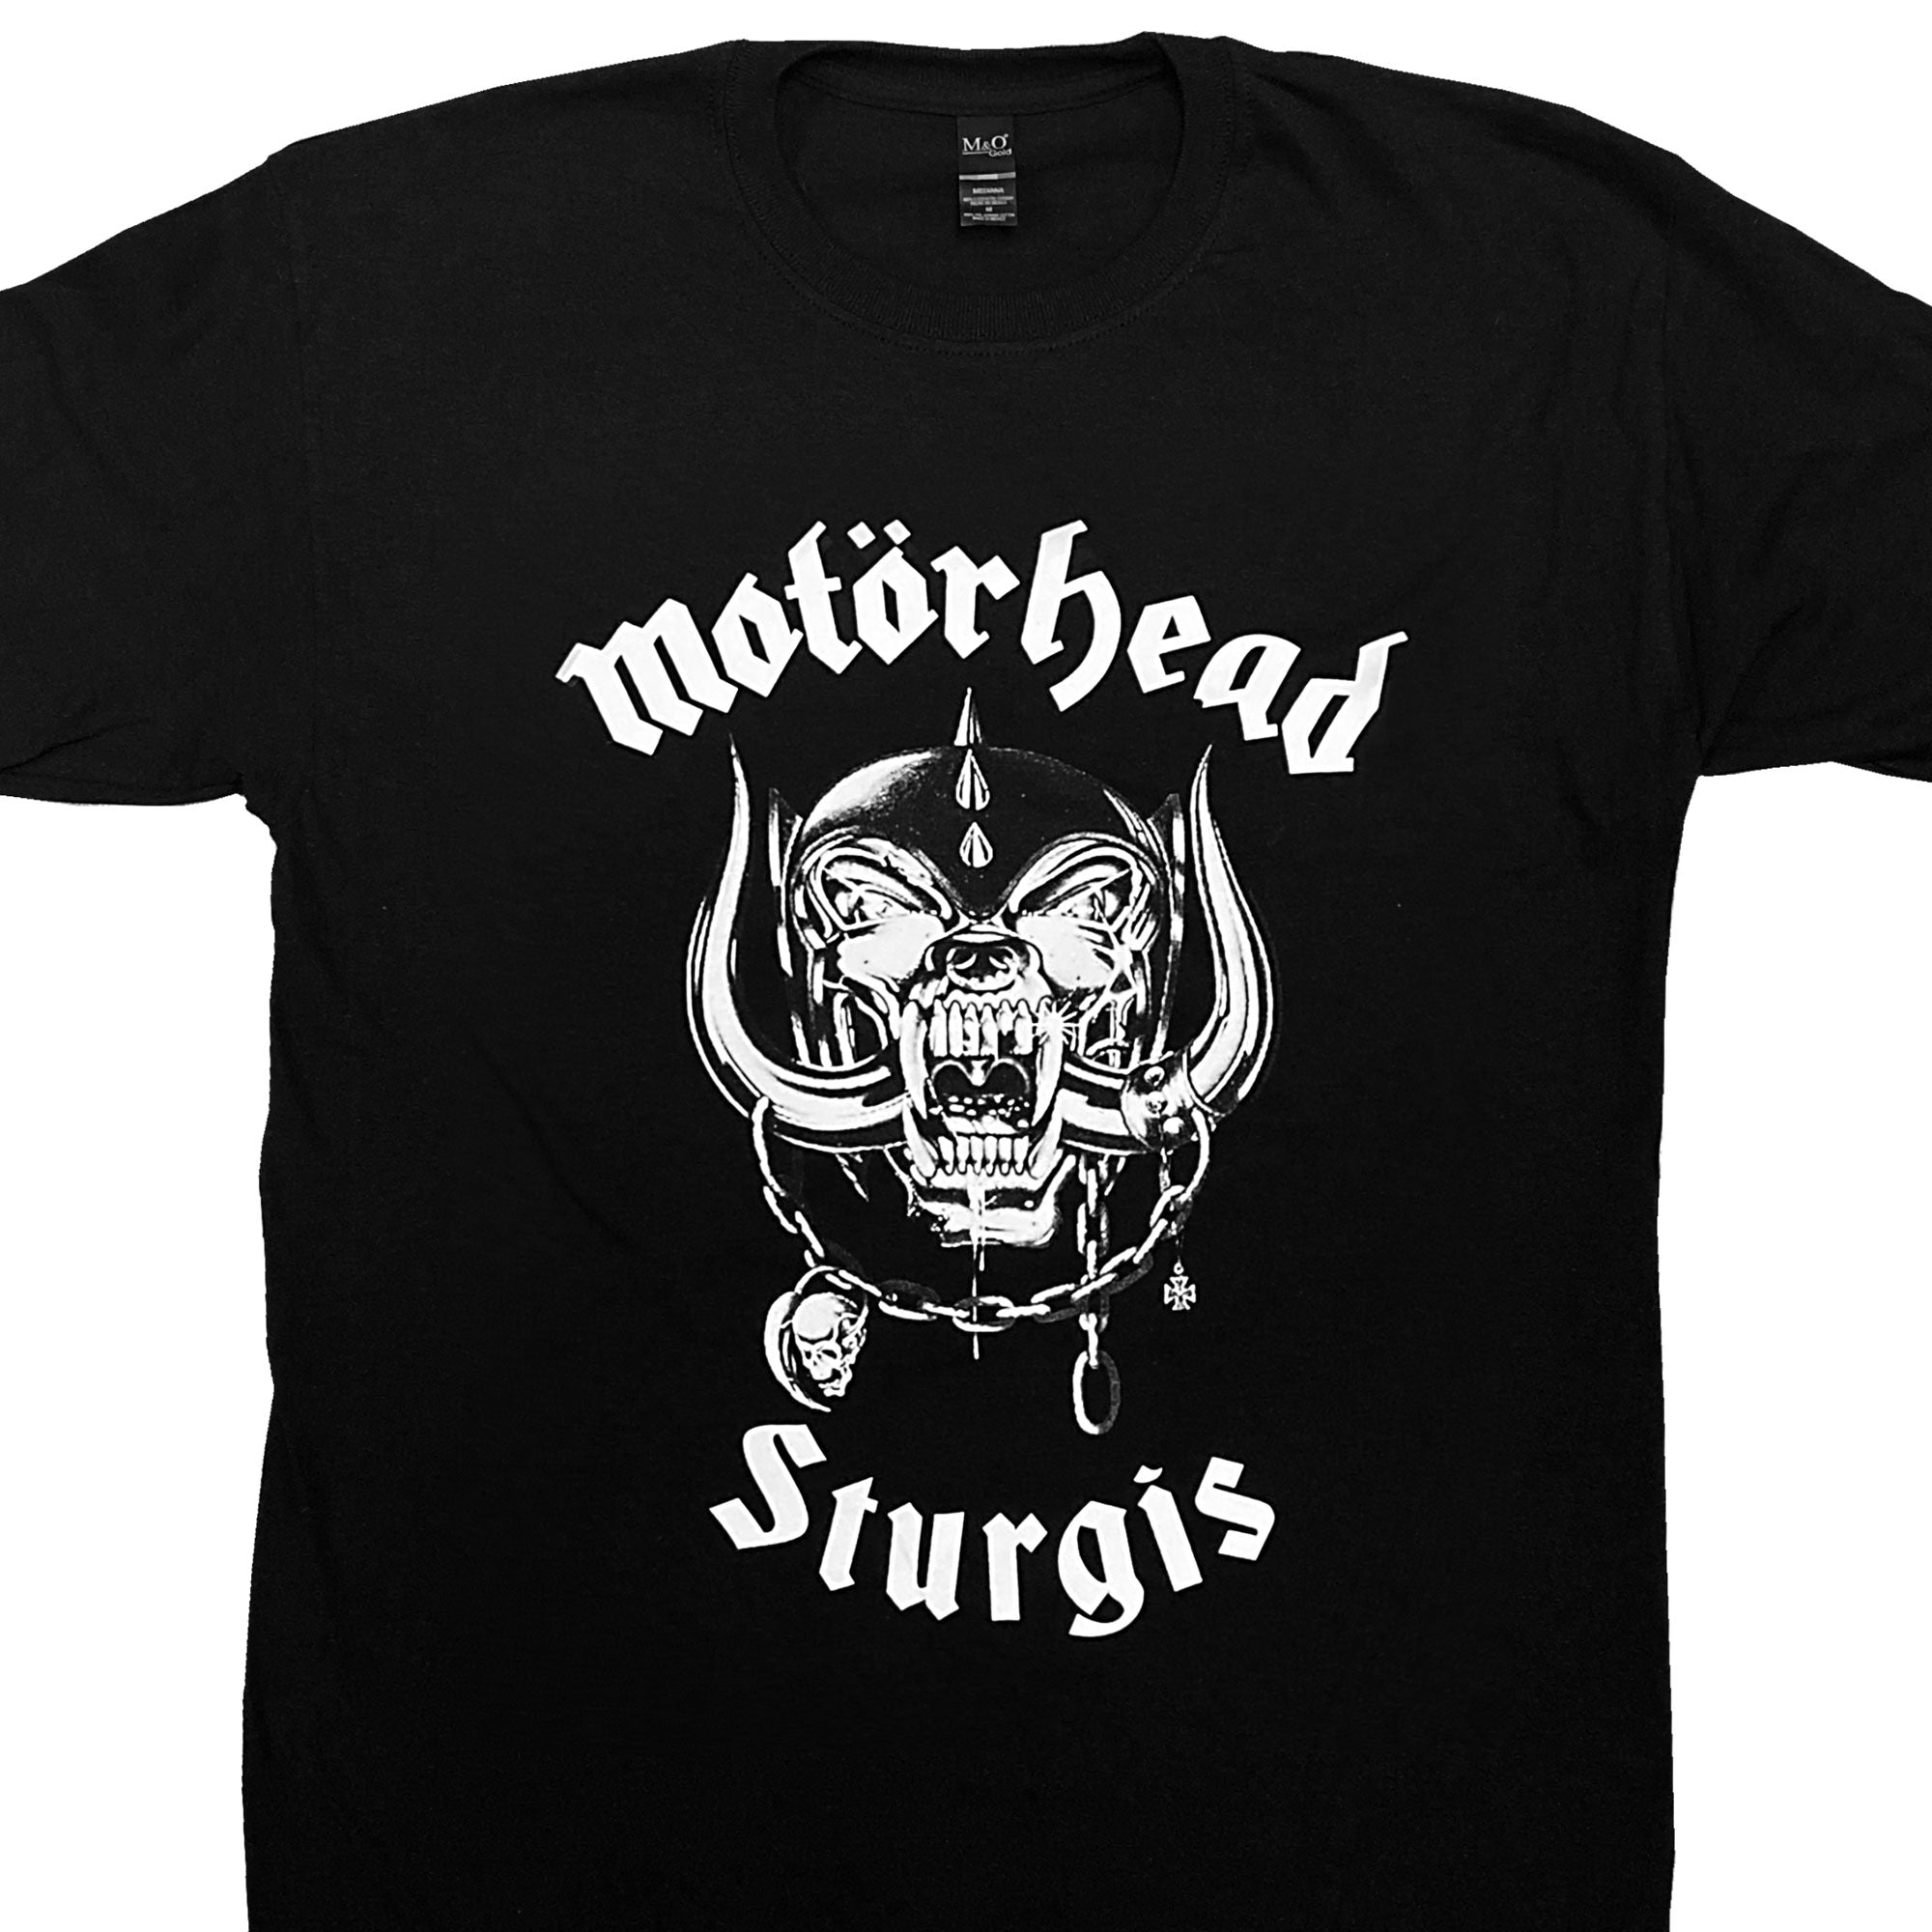 LIMITED EDITION Official Motörhead 2020 Sturgis T-Shirt